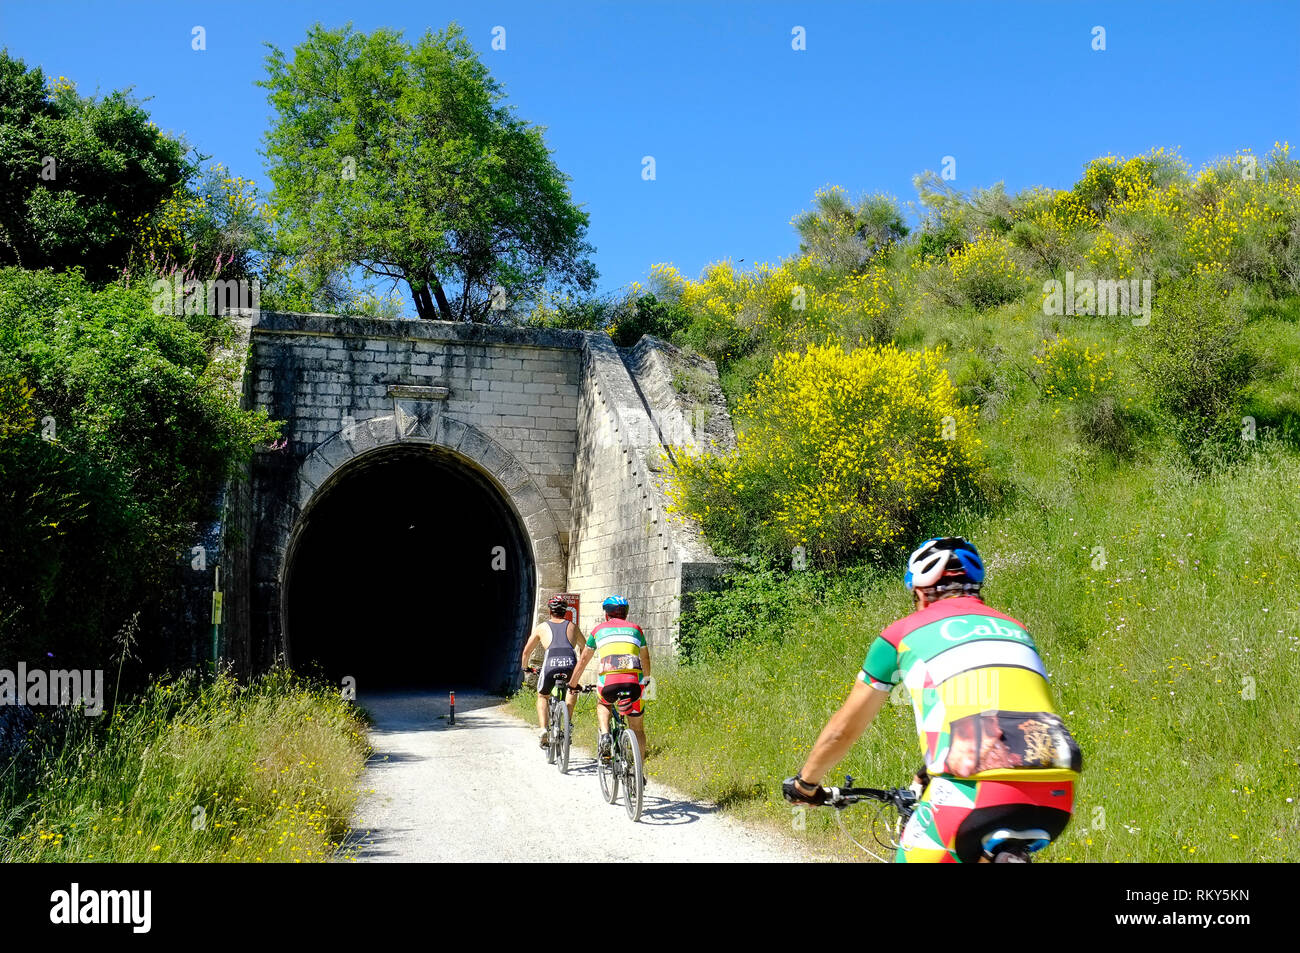 Cyclists enjoying cycling along the Via Verde, a disused oil railway line in the Sierra Subbetica, Andalucia, Spain - Stock Image